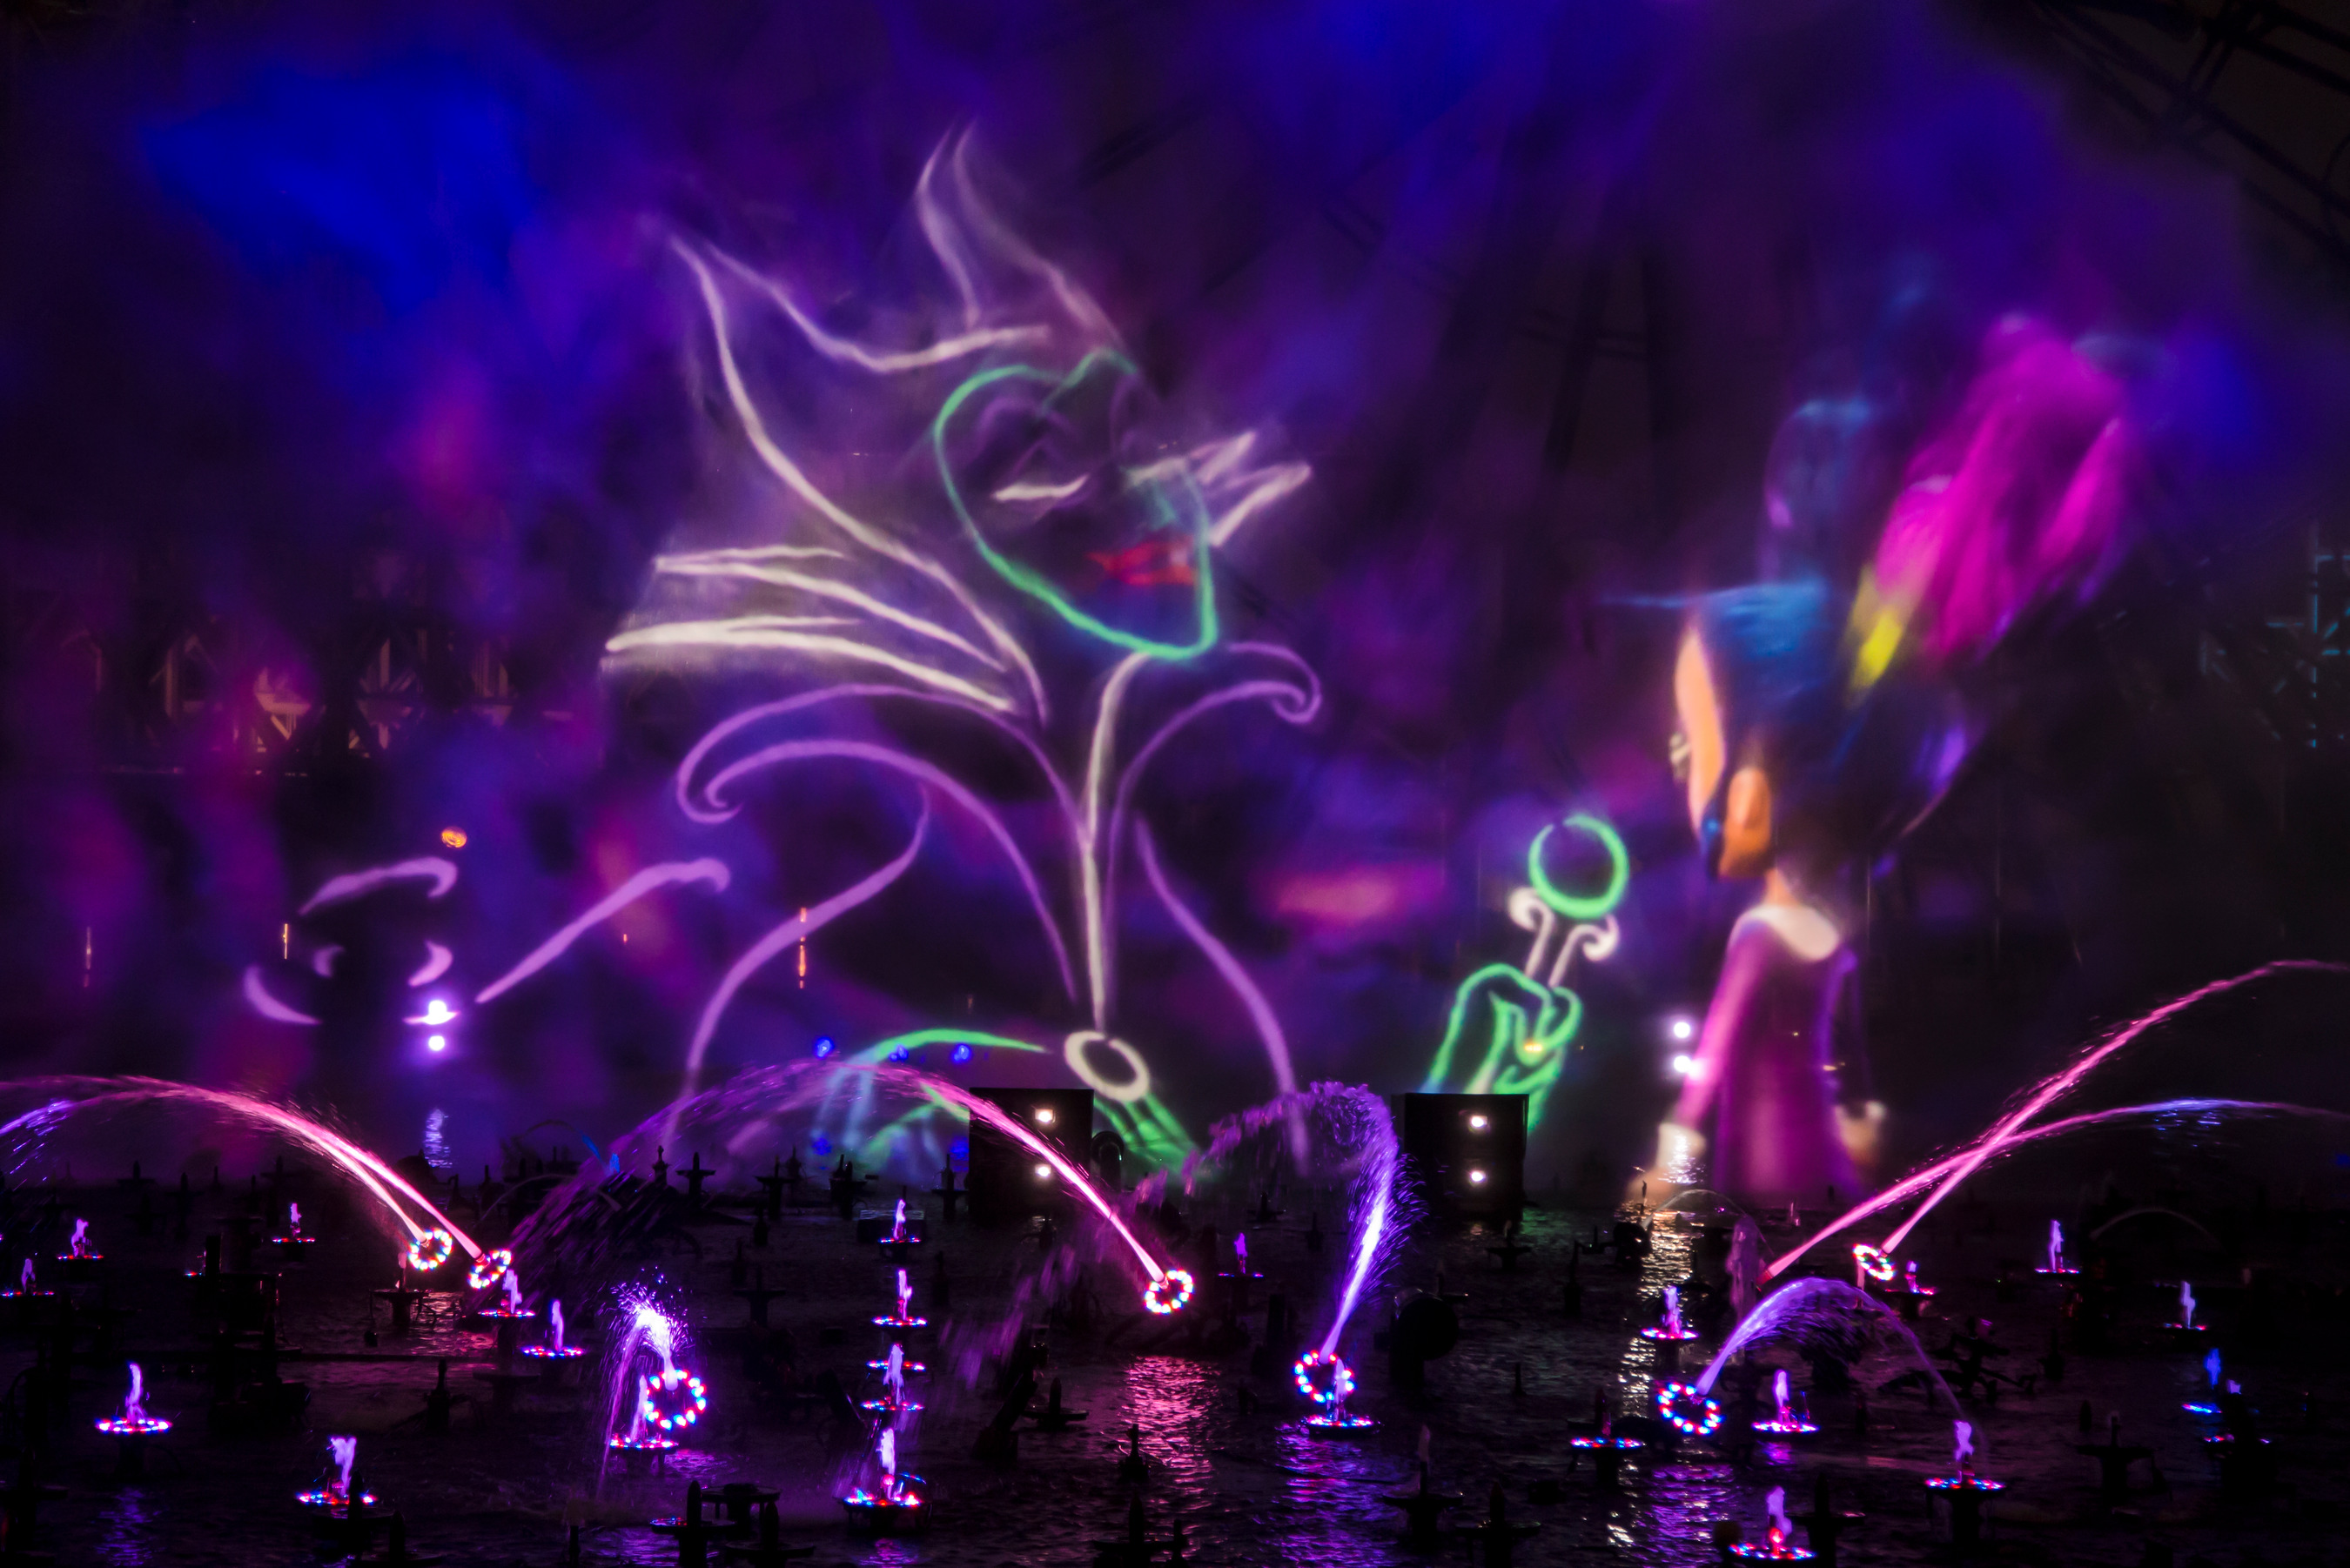 Villainous! show en Disney California Adventure